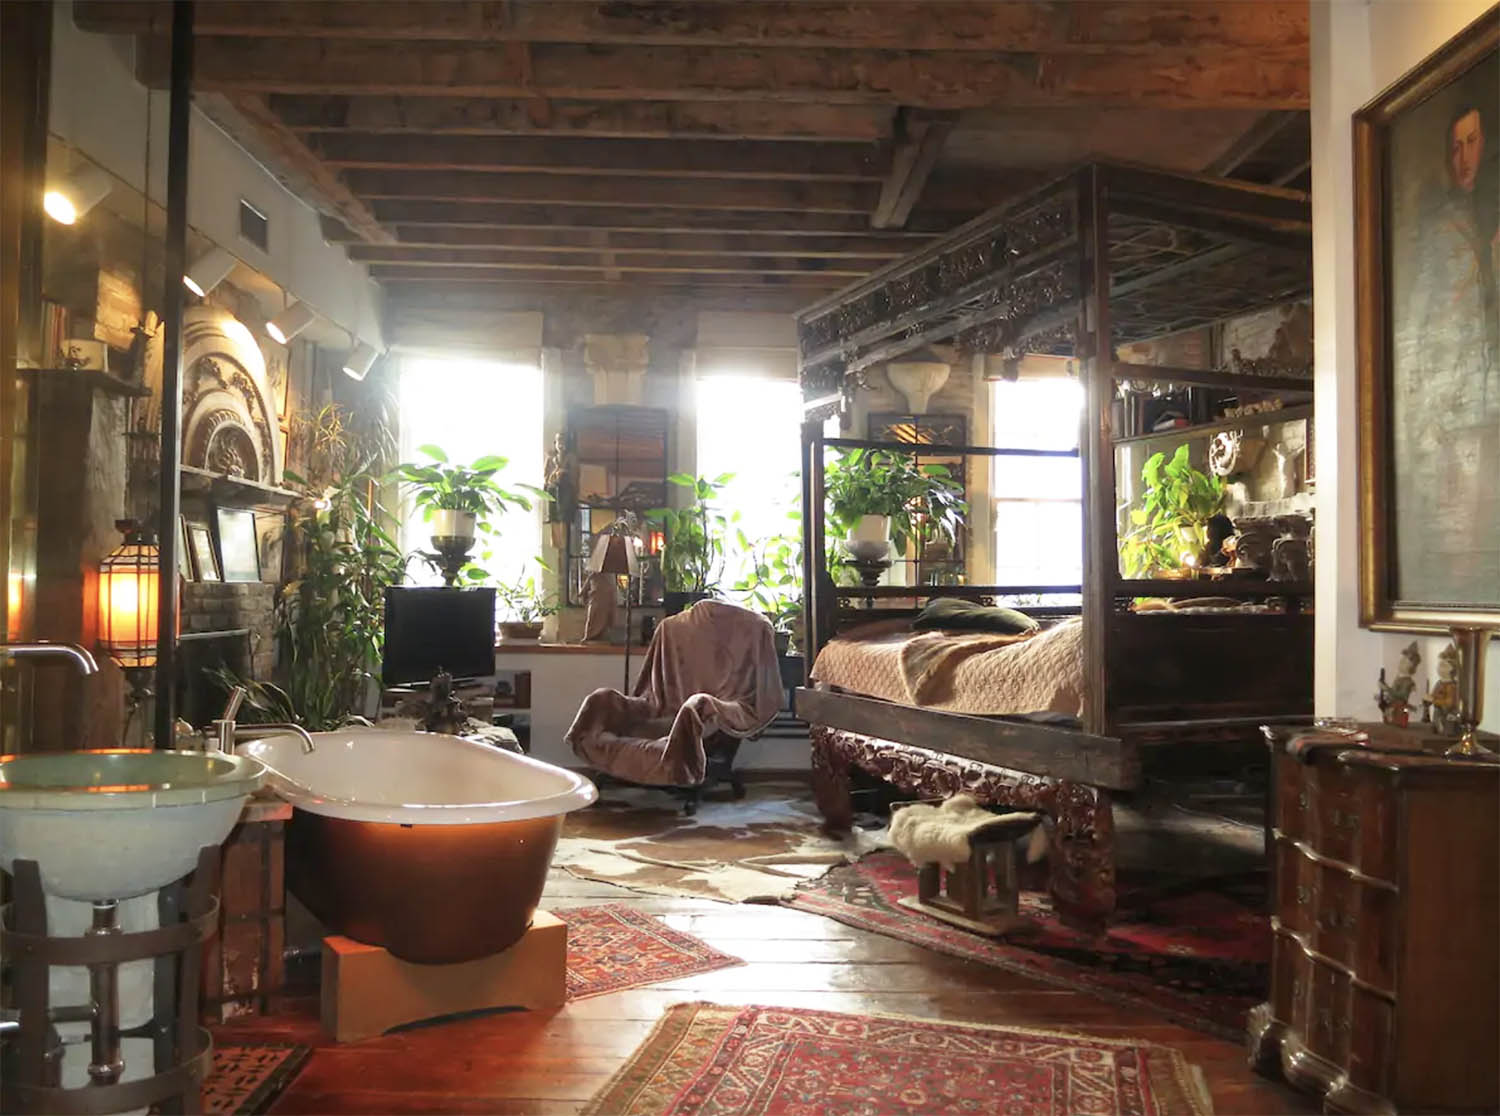 Bohemian Art Eclectic Flat Airbnb NYC New York City